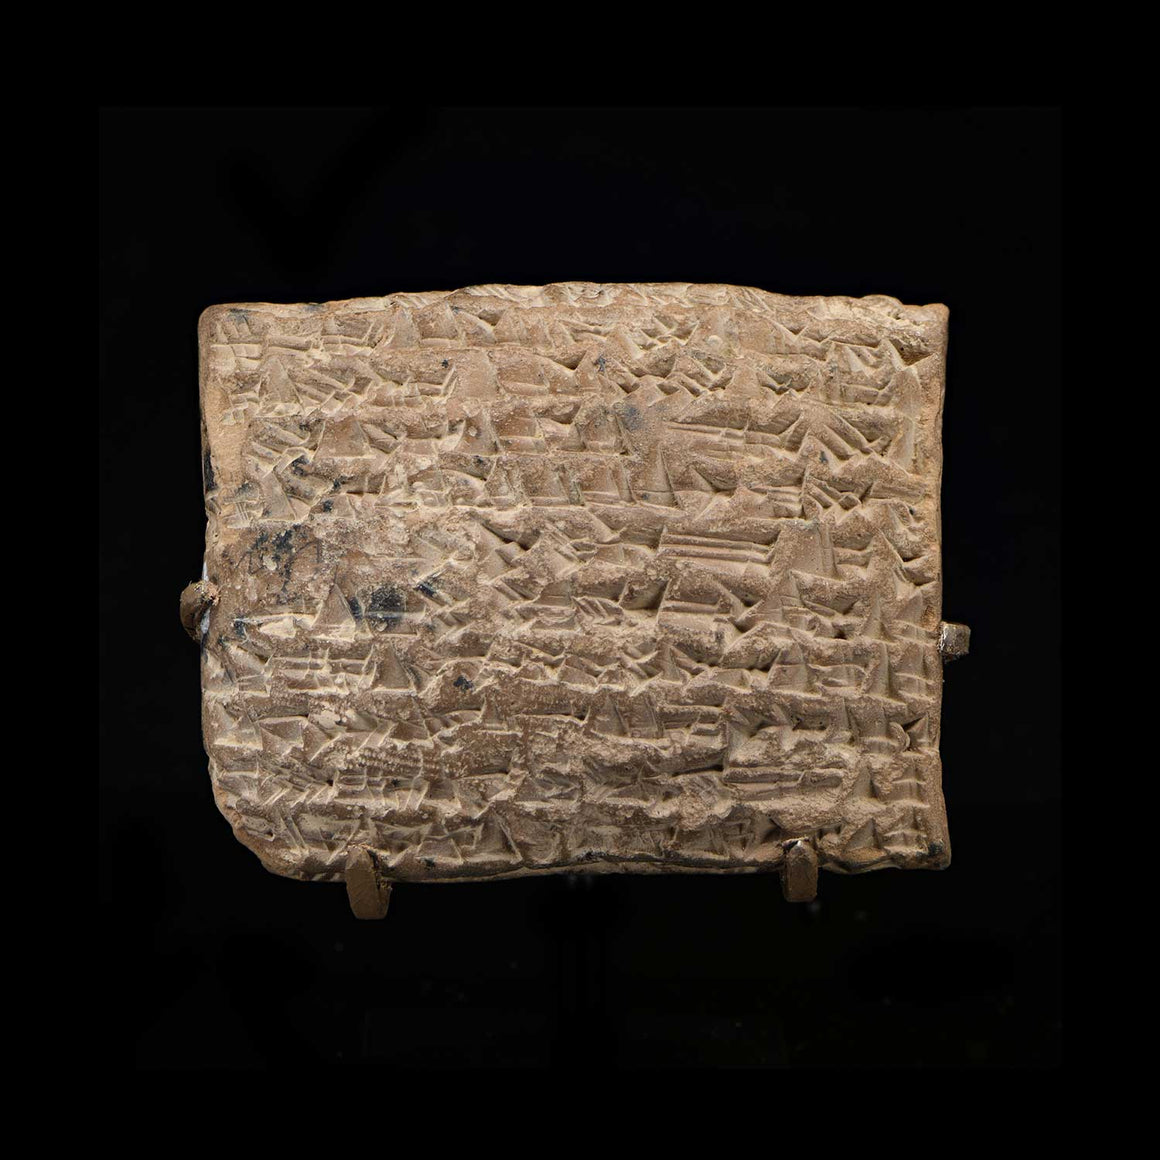 A large Babylonian cuneiform tablet, time of Hammurabi, ca. 1810 – 1750 BCE - Sands of Time Ancient Art